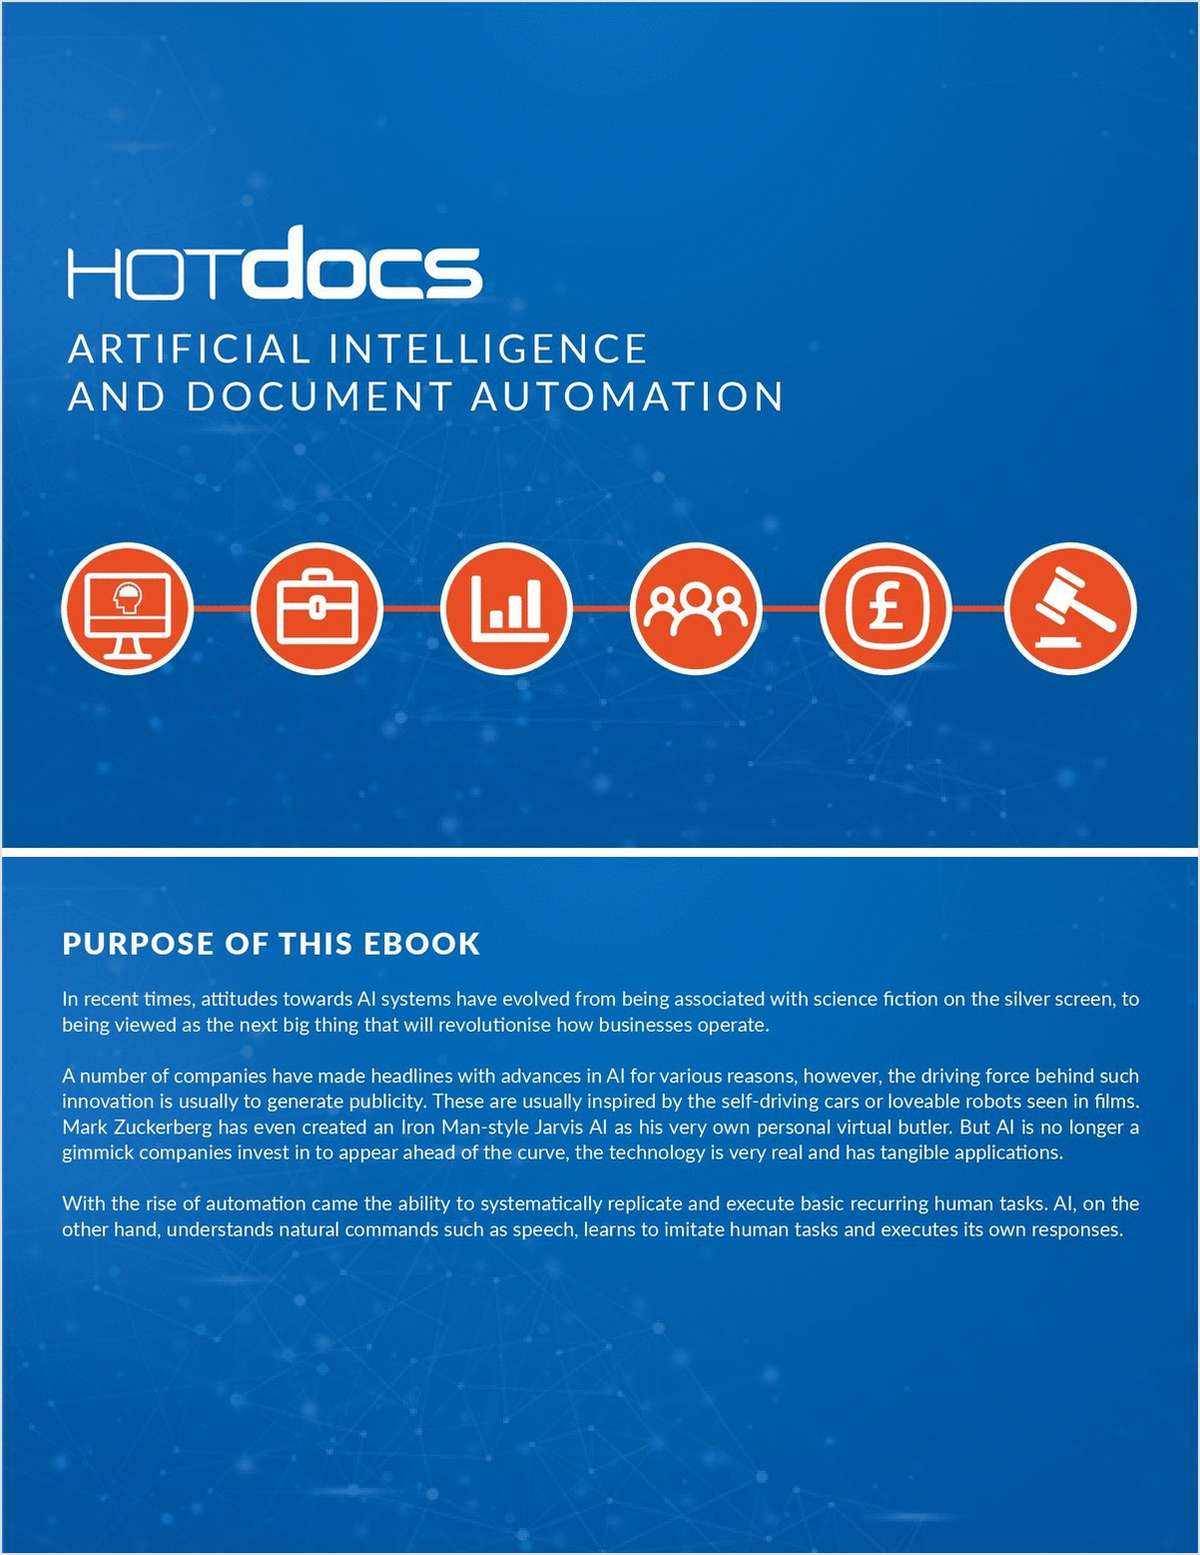 Artificial Intelligence and Document Automation - How They are Revolutionising Business Operations